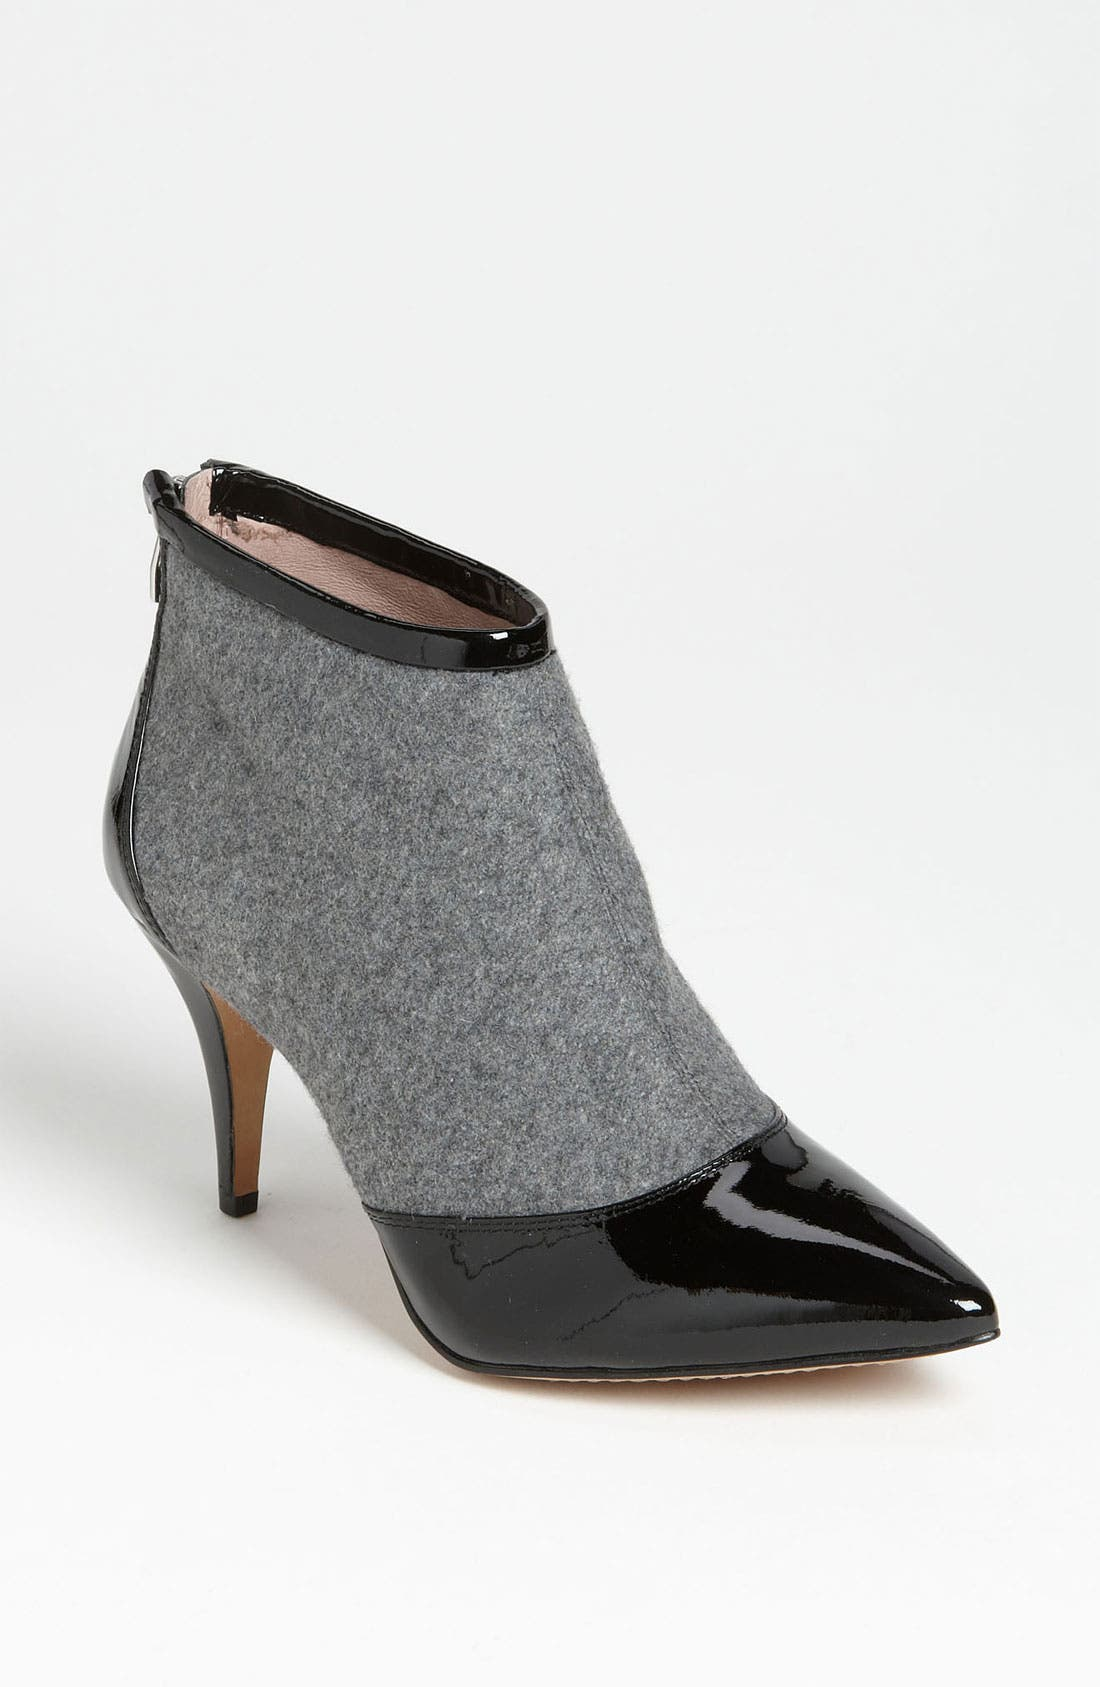 Main Image - Vince Camuto 'Onda' Bootie